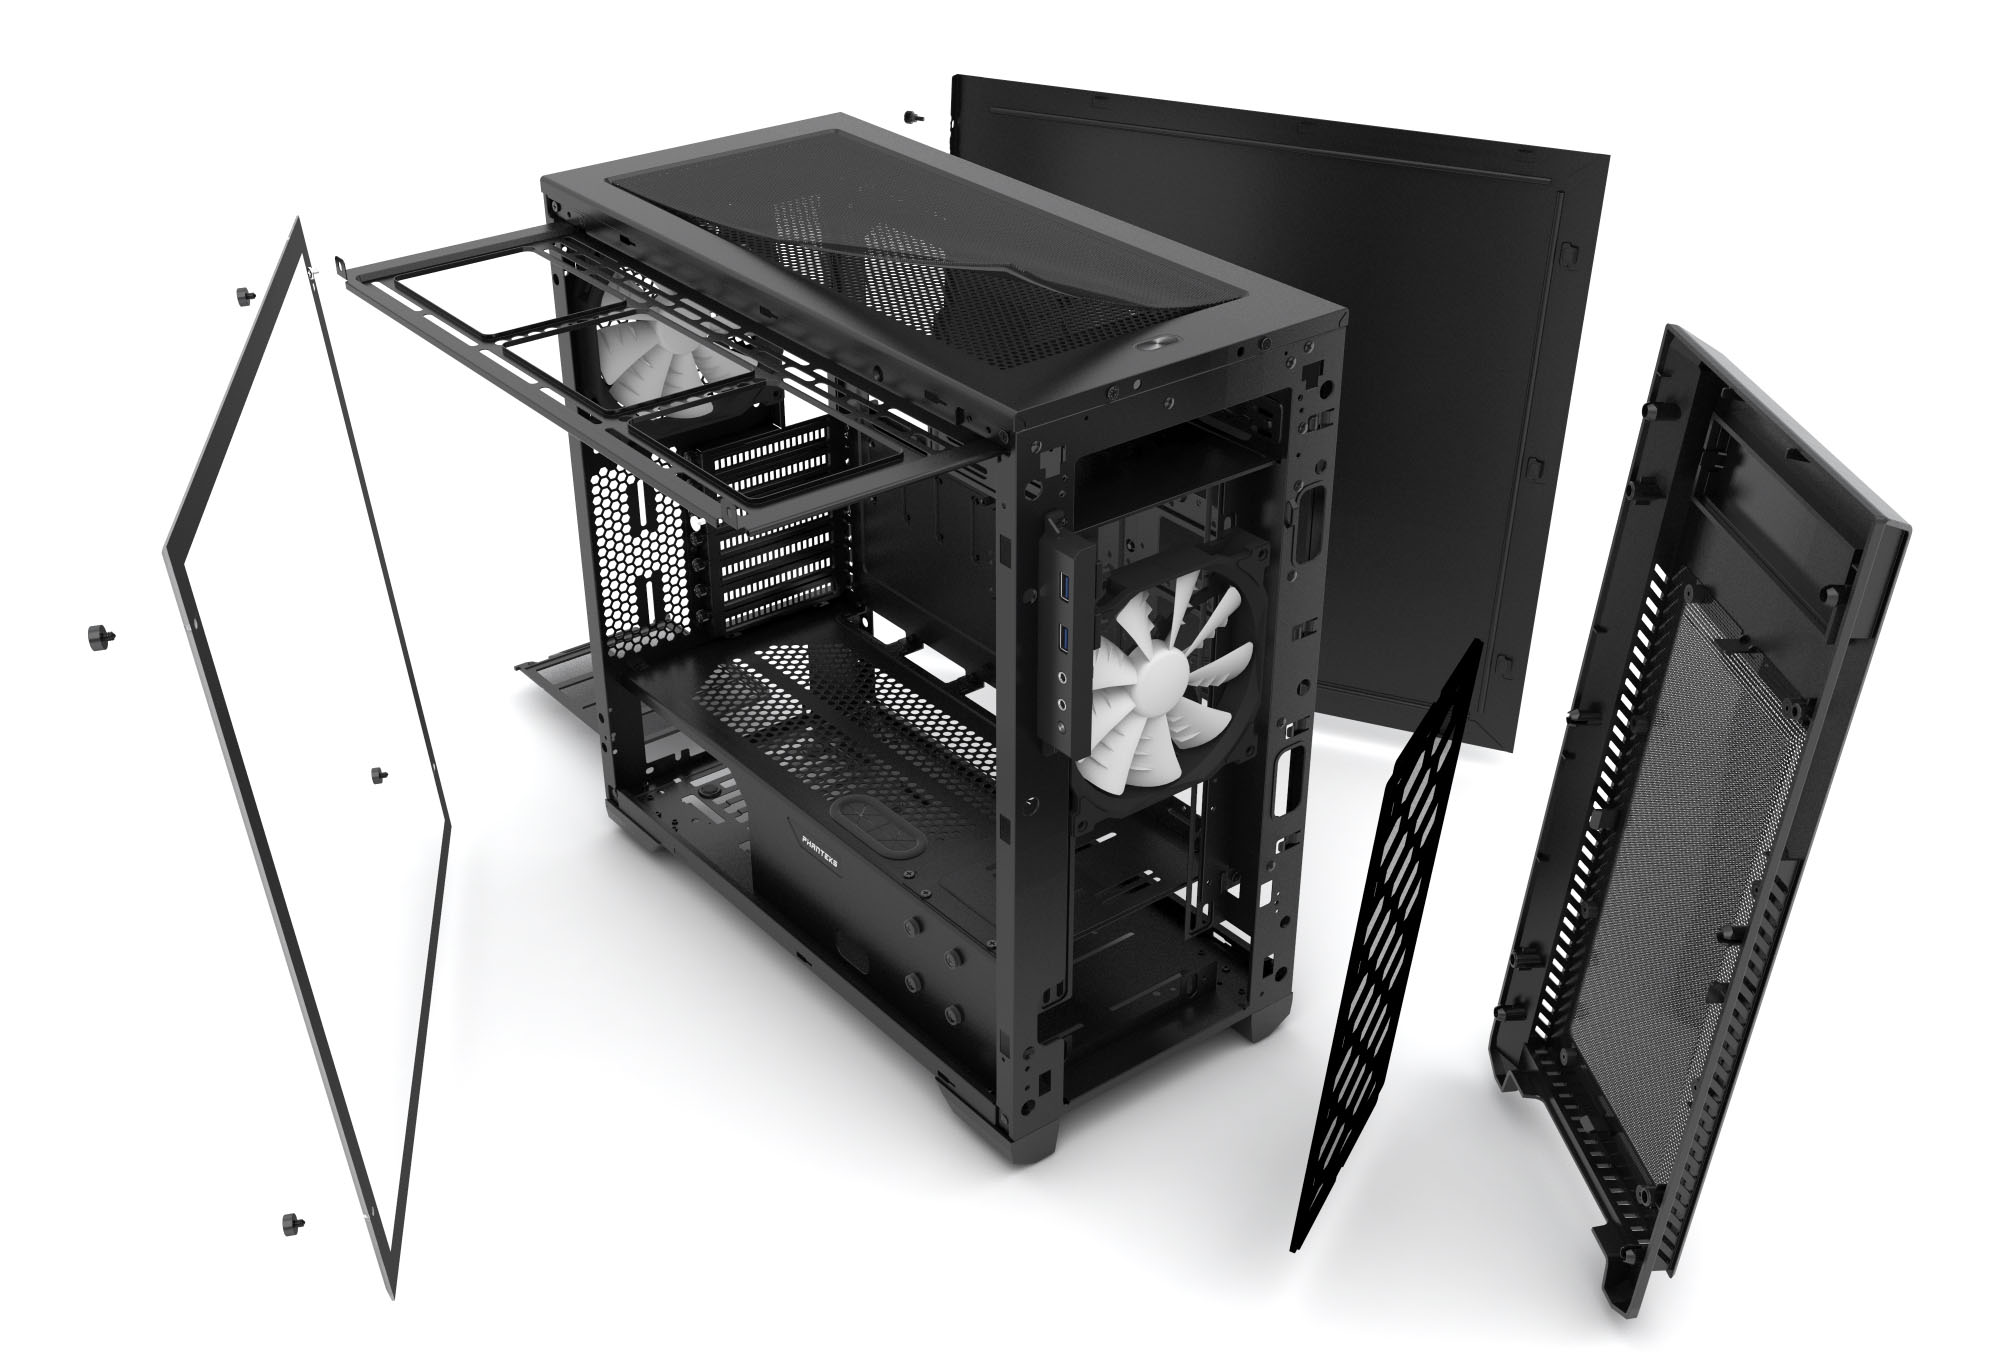 enthoo_pro_m_black_acrylic_sidepanel_exploded_view_2k_update.jpg